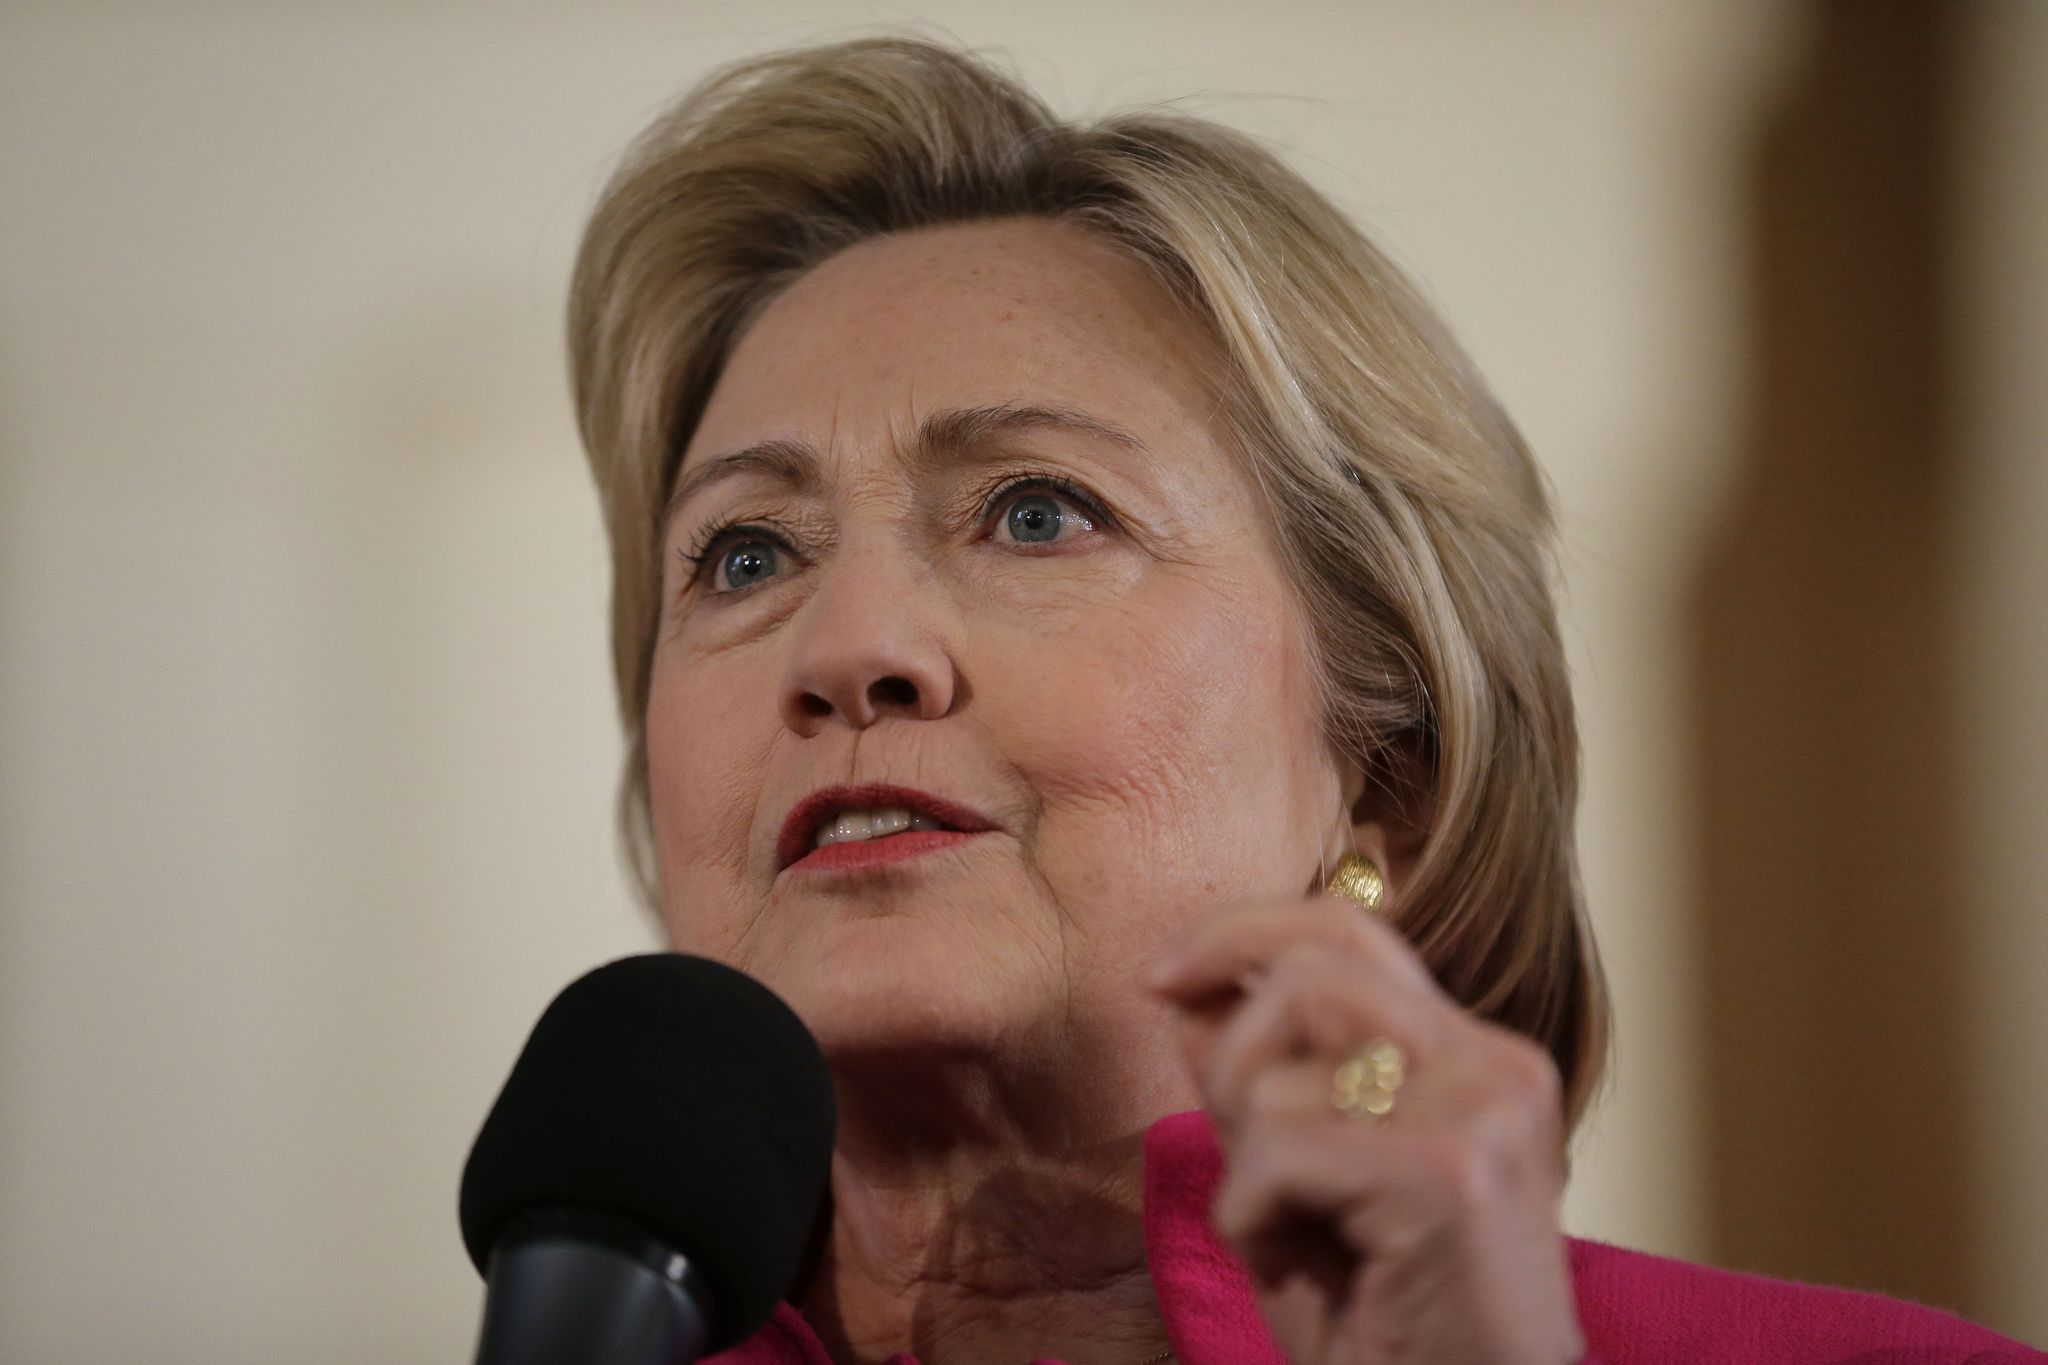 Clinton advised to consider resigning as secretary of state after Obama's Russia comments